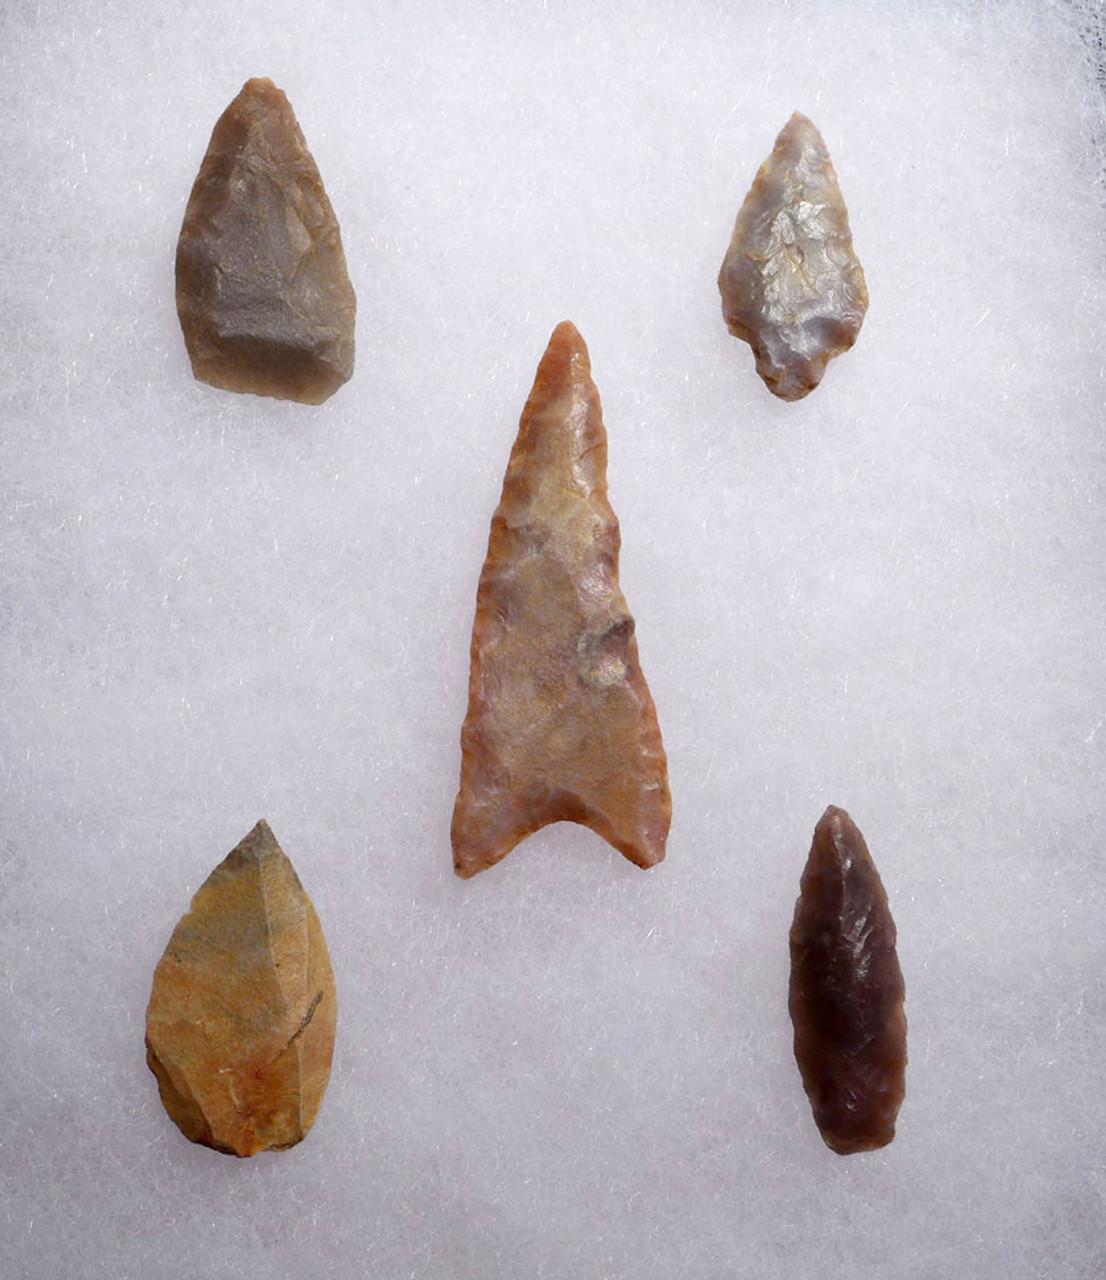 CAPSIAN AFRICAN NEOLITHIC ARROWHEADS